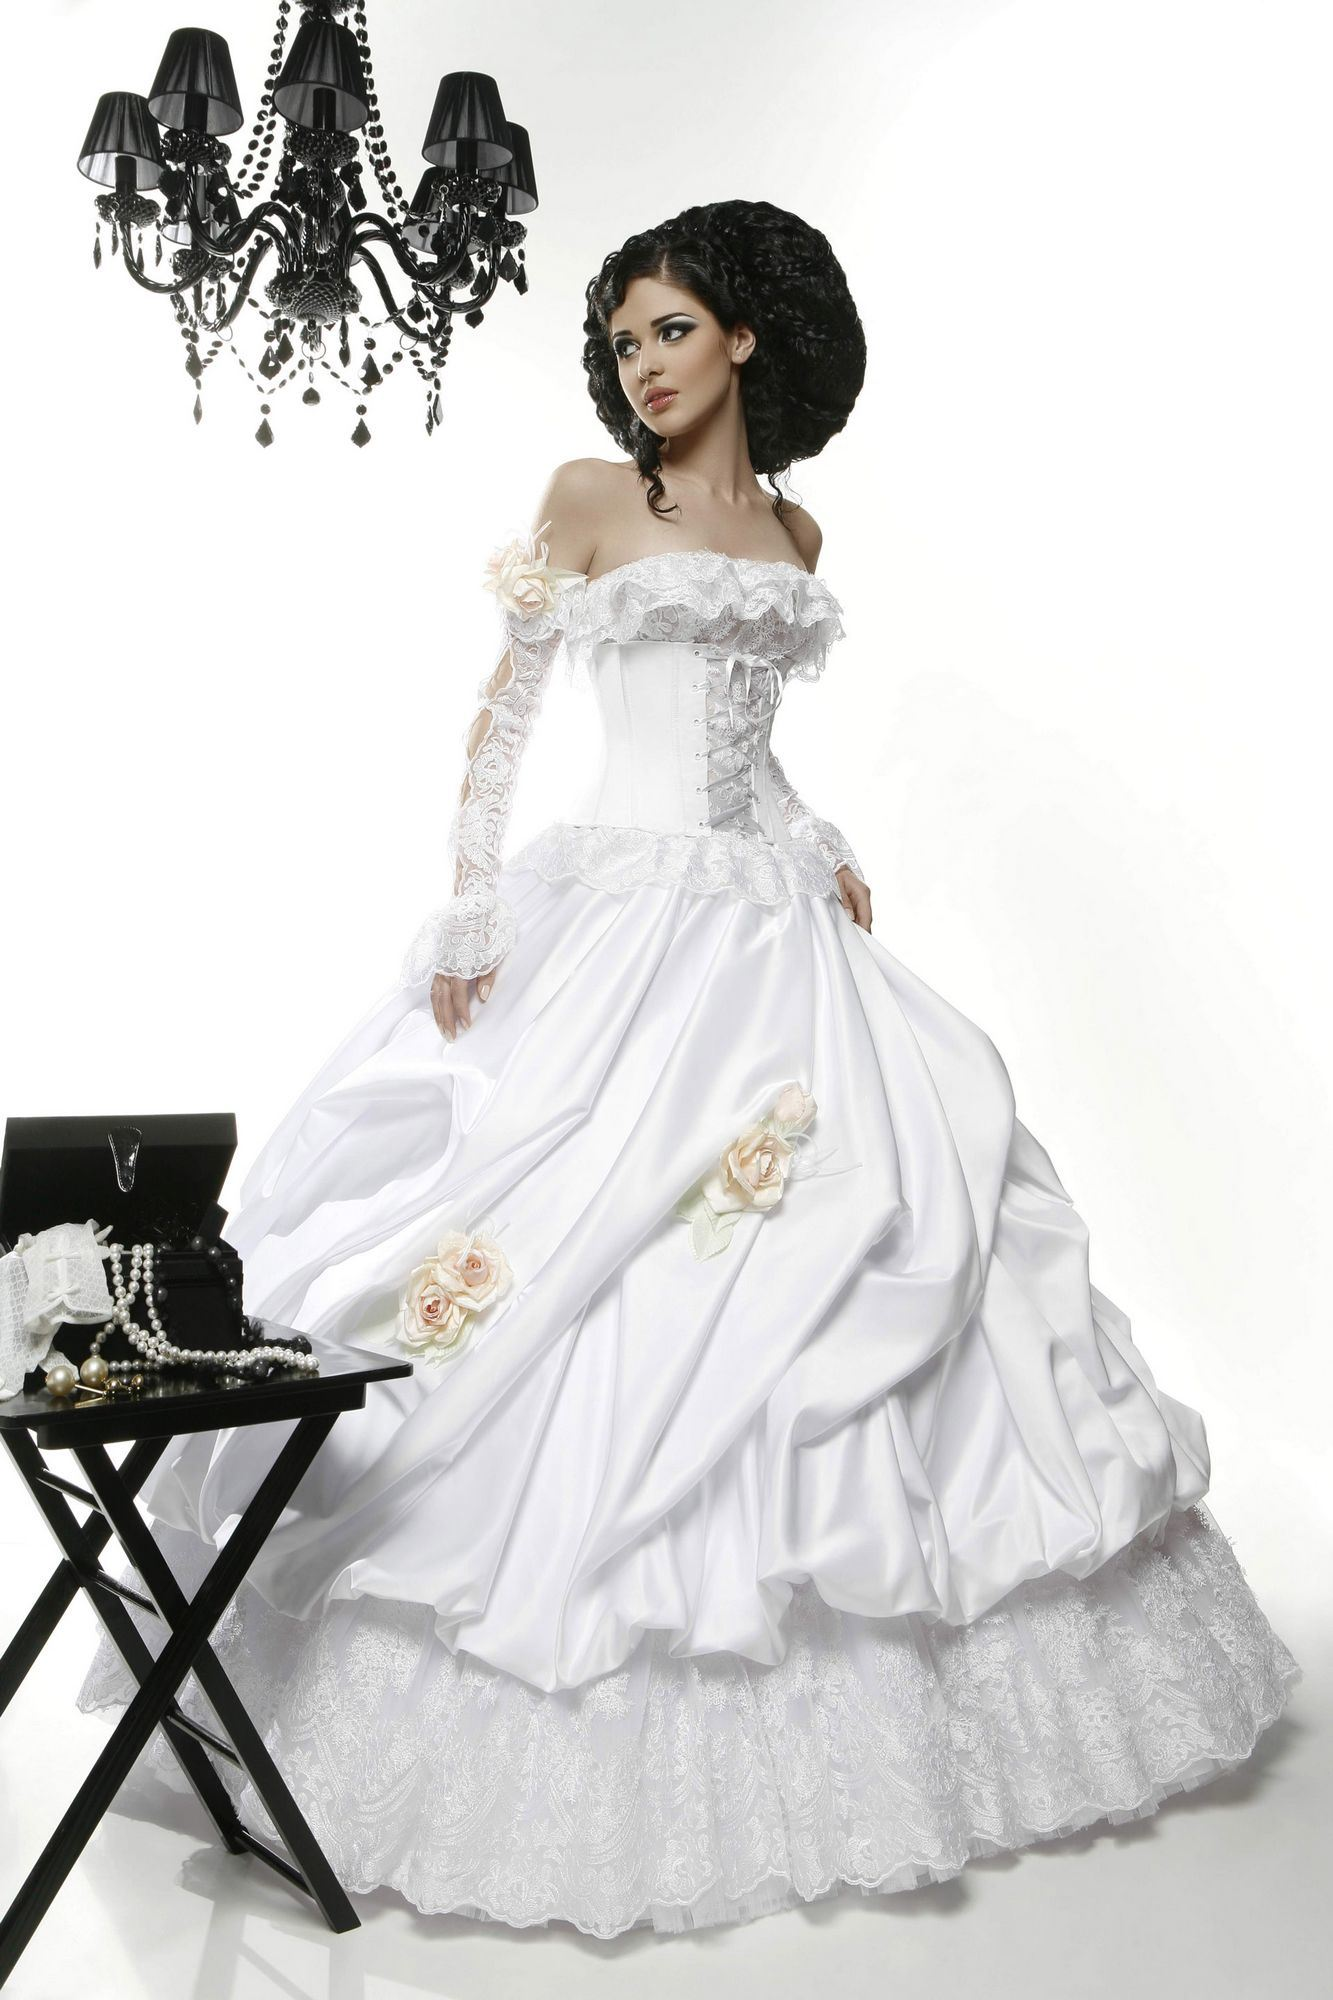 Ball Gown Wedding Dresses With Long Sleeves : Long sleeve ball gown hs china wedding dresses